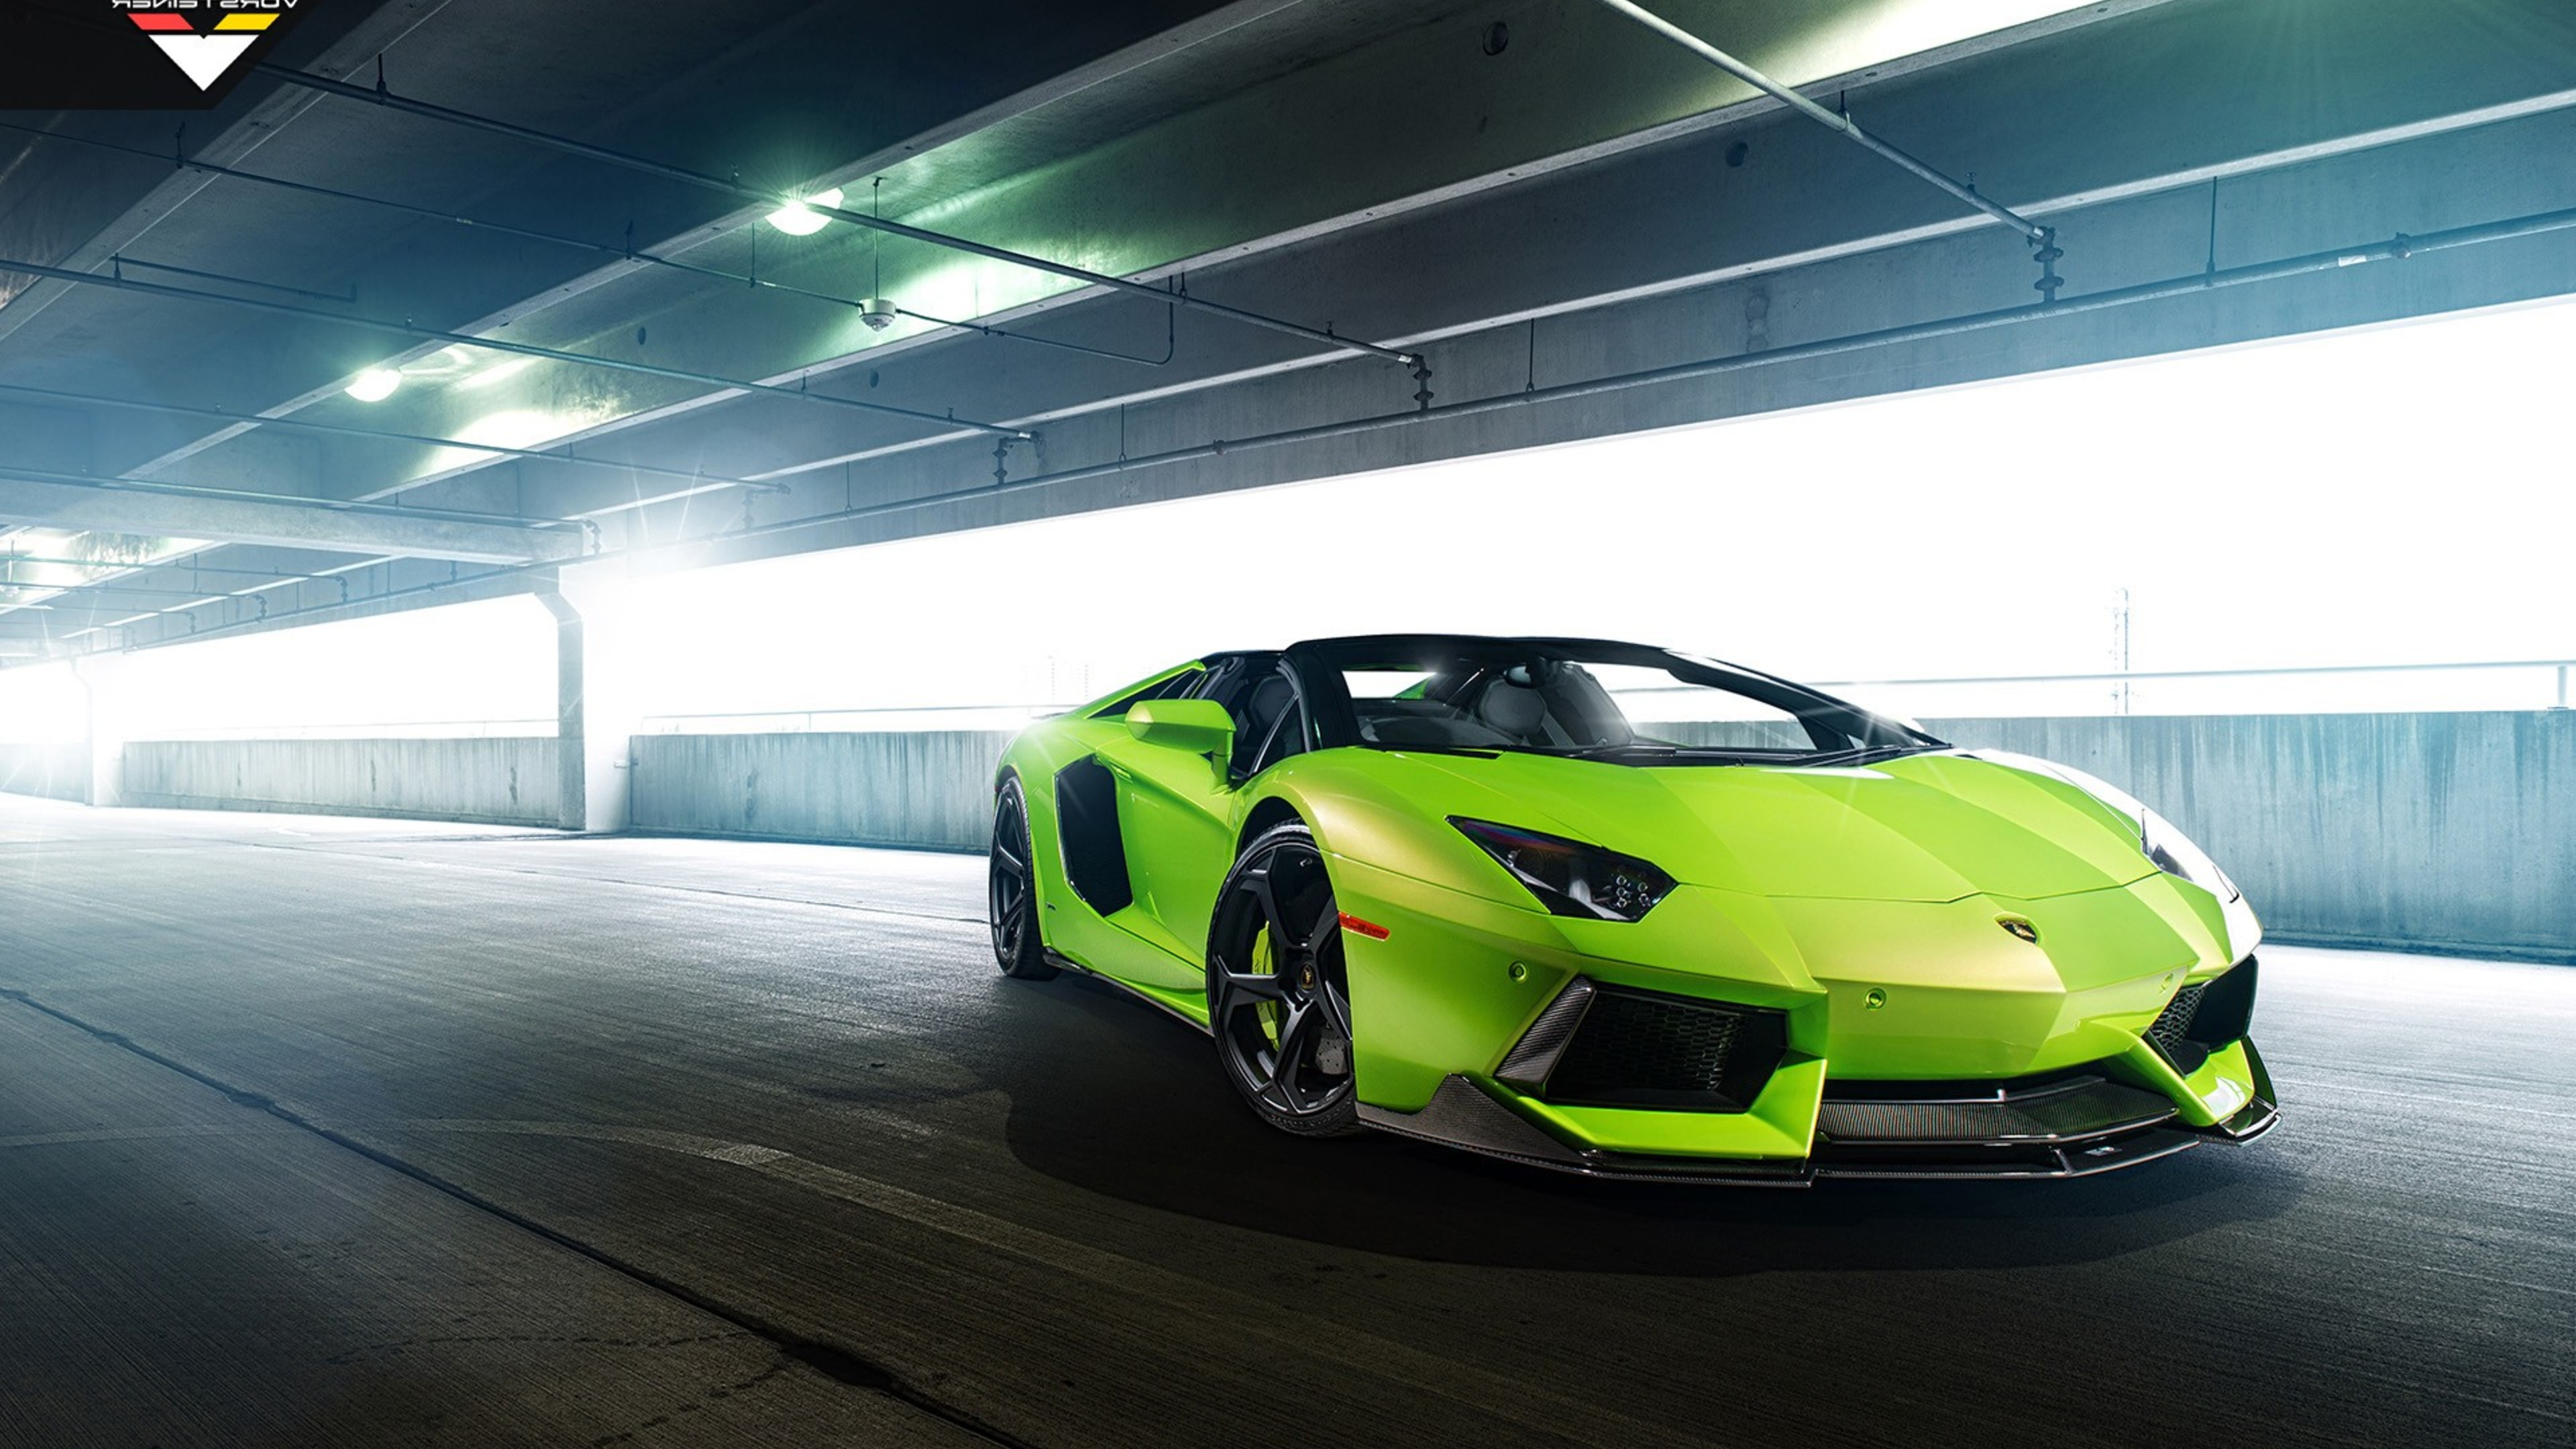 Lamborghini Green Hd Cars 4k Wallpapers Images Backgrounds Photos And Pictures